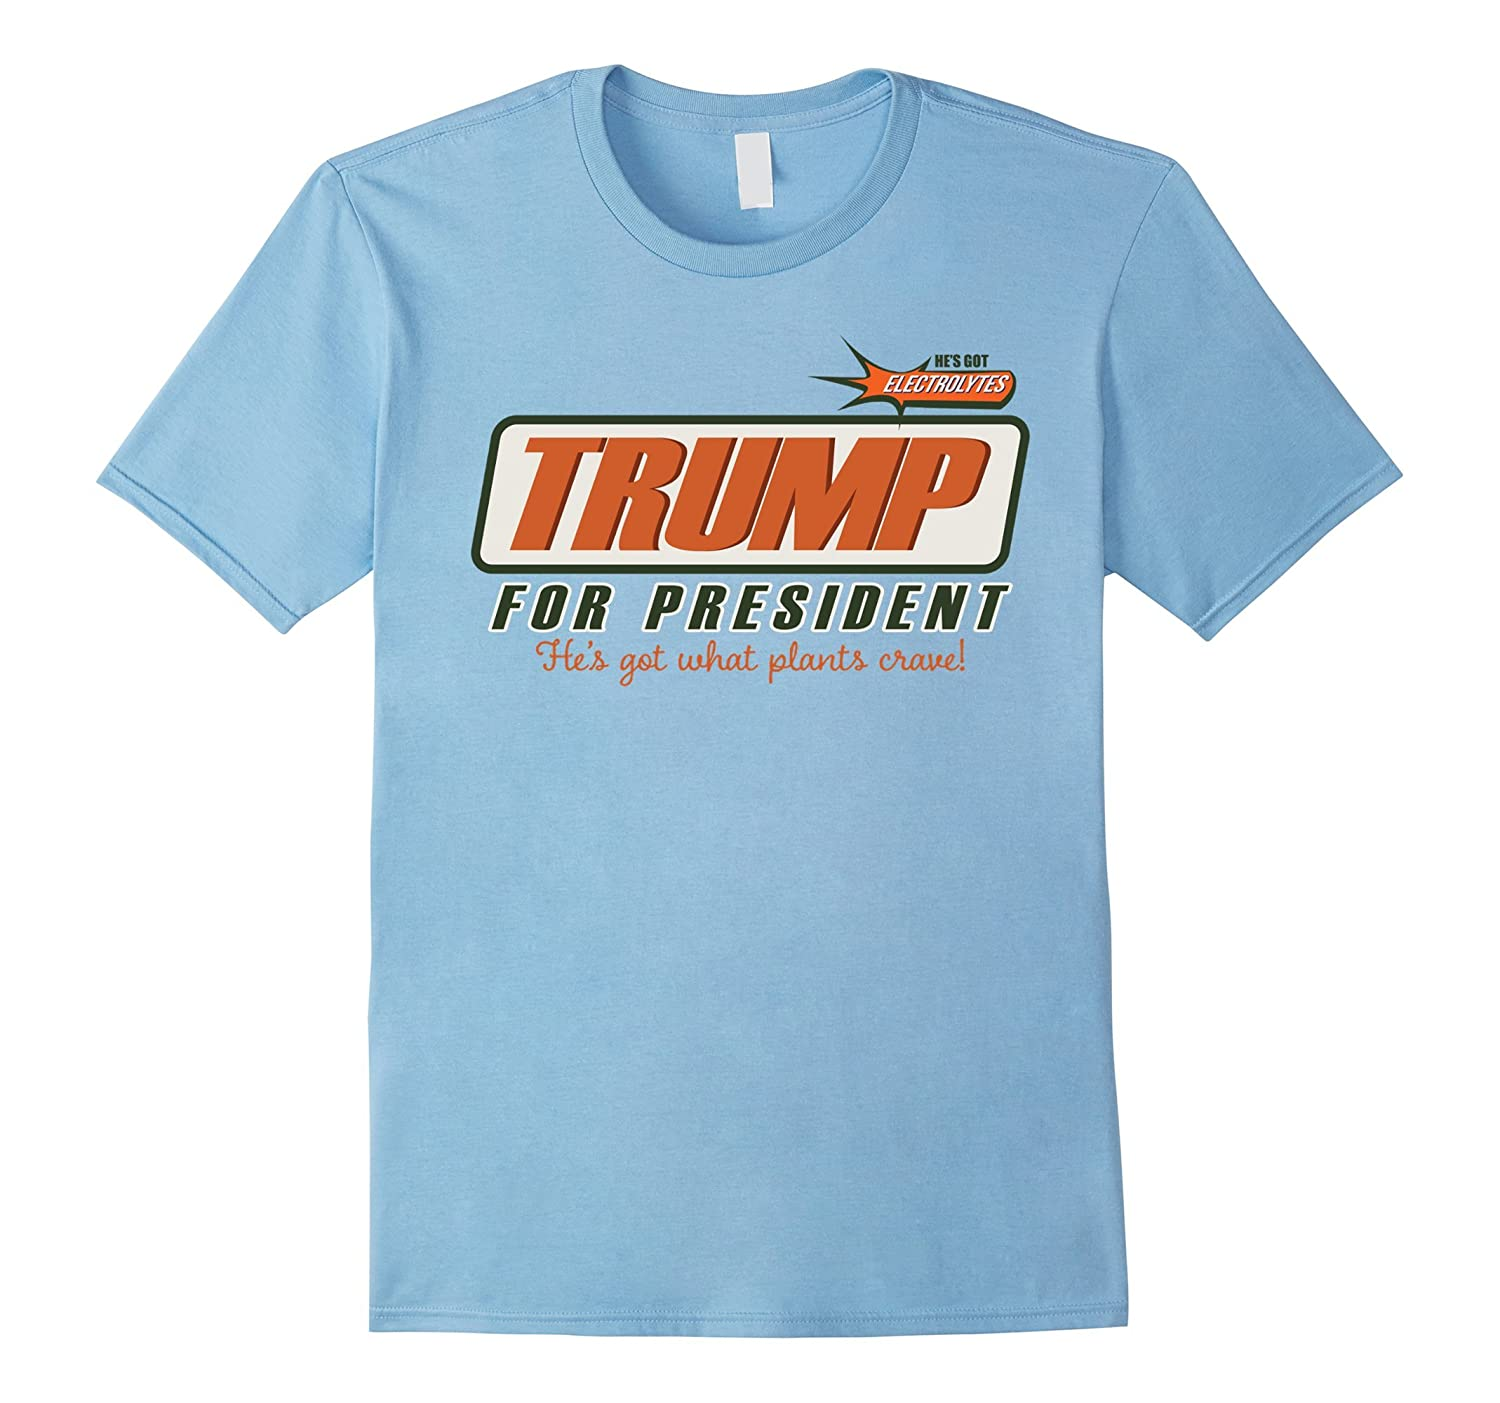 Trump For President He Got What Plants Crave Idiocracy Shirt